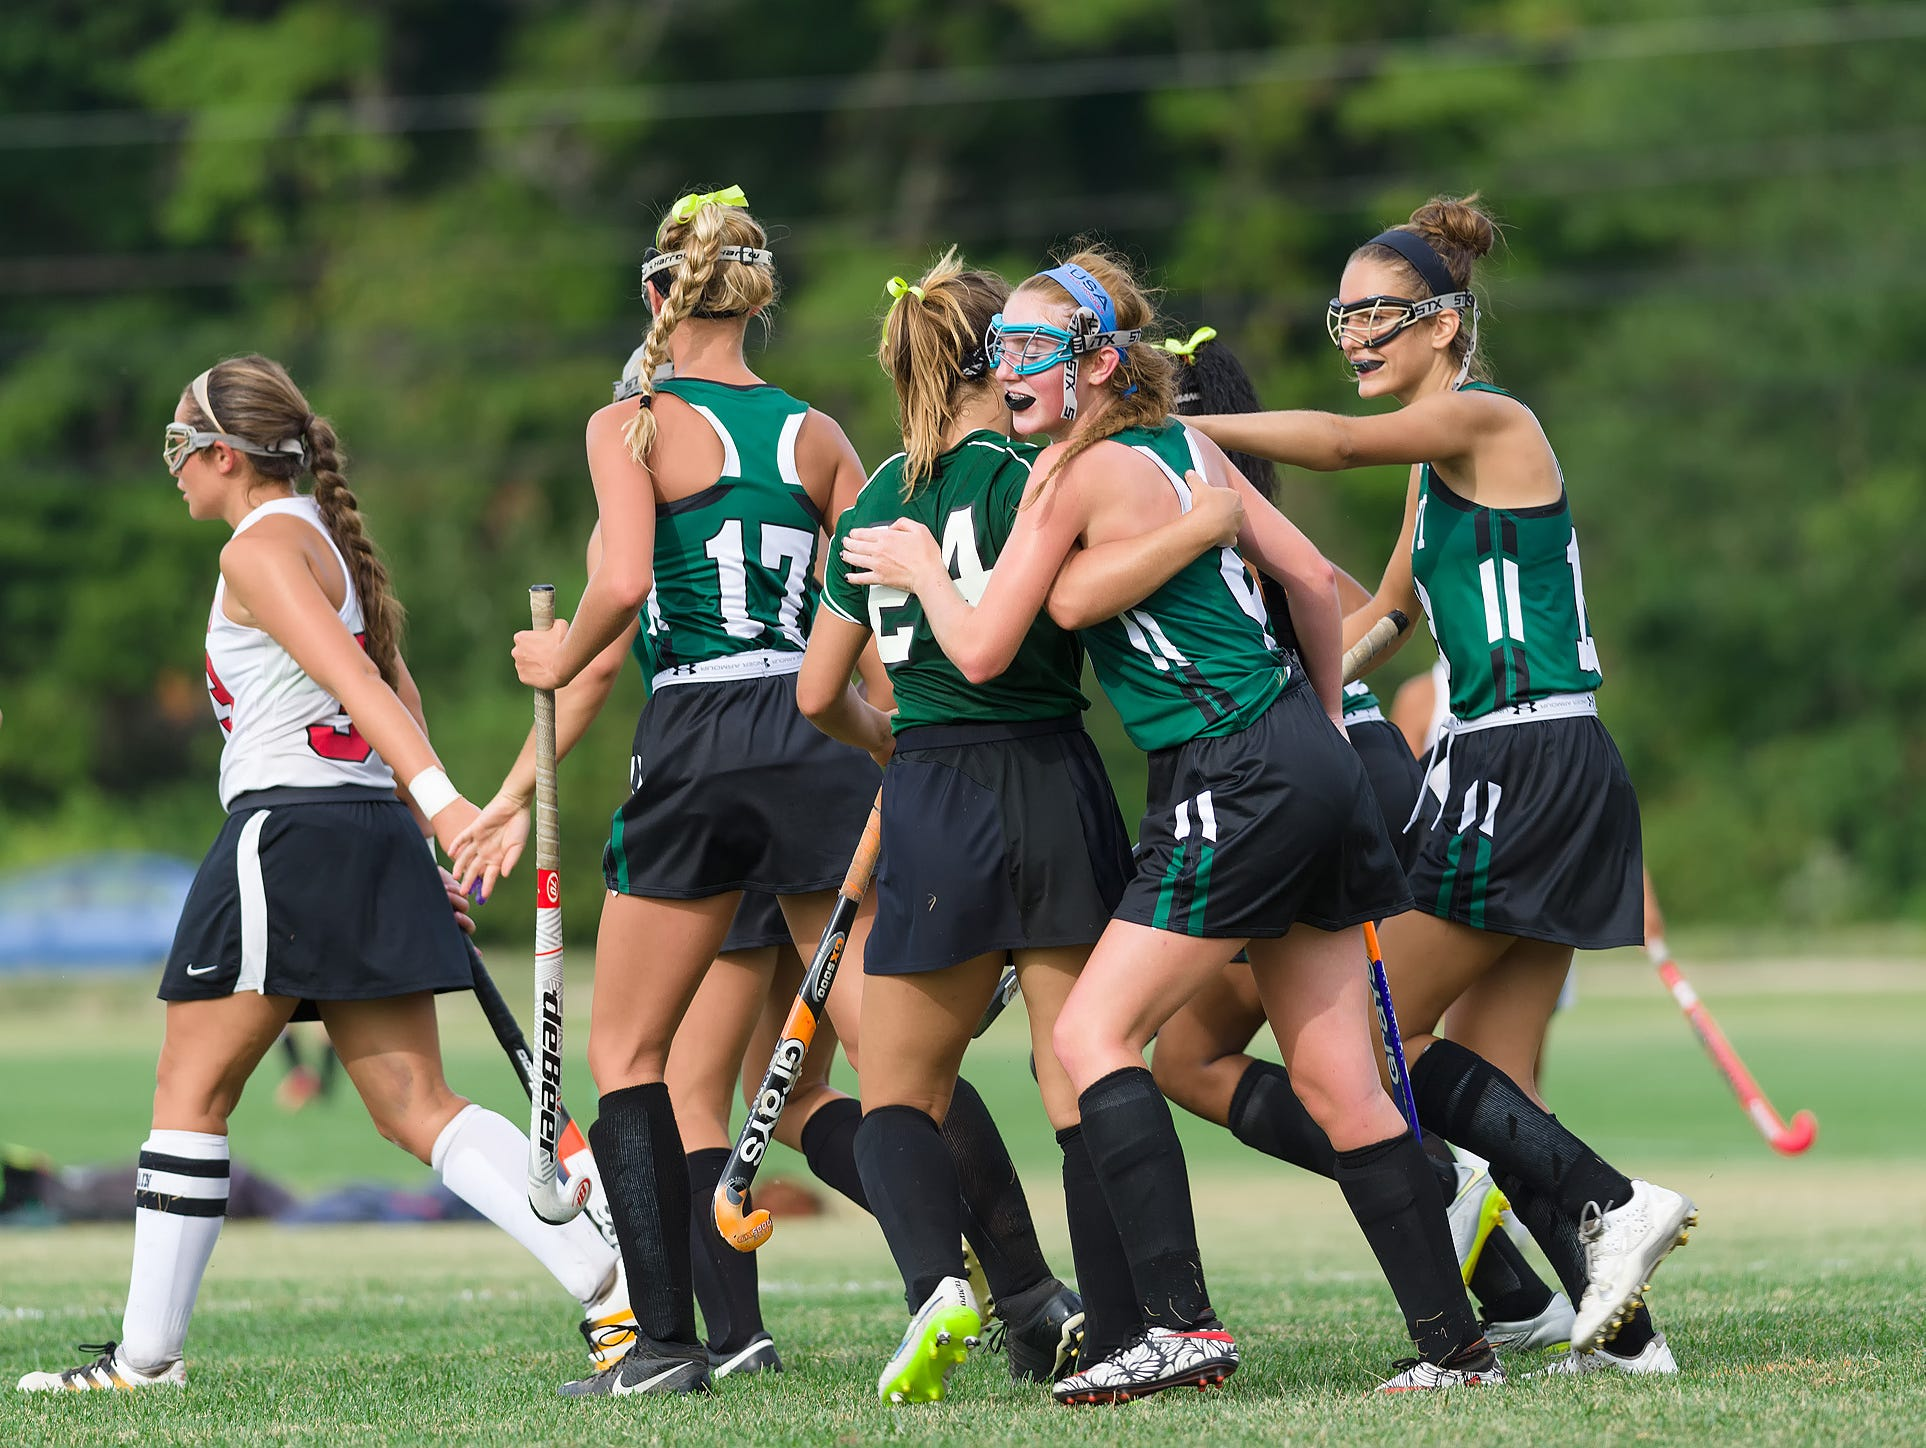 Alexandra Davis (9) of Mt. Pleasant gets congratulated by teammates on her goal in the William Penn vs Mt. Pleasant field hockey game at William Penn on Tuesday.